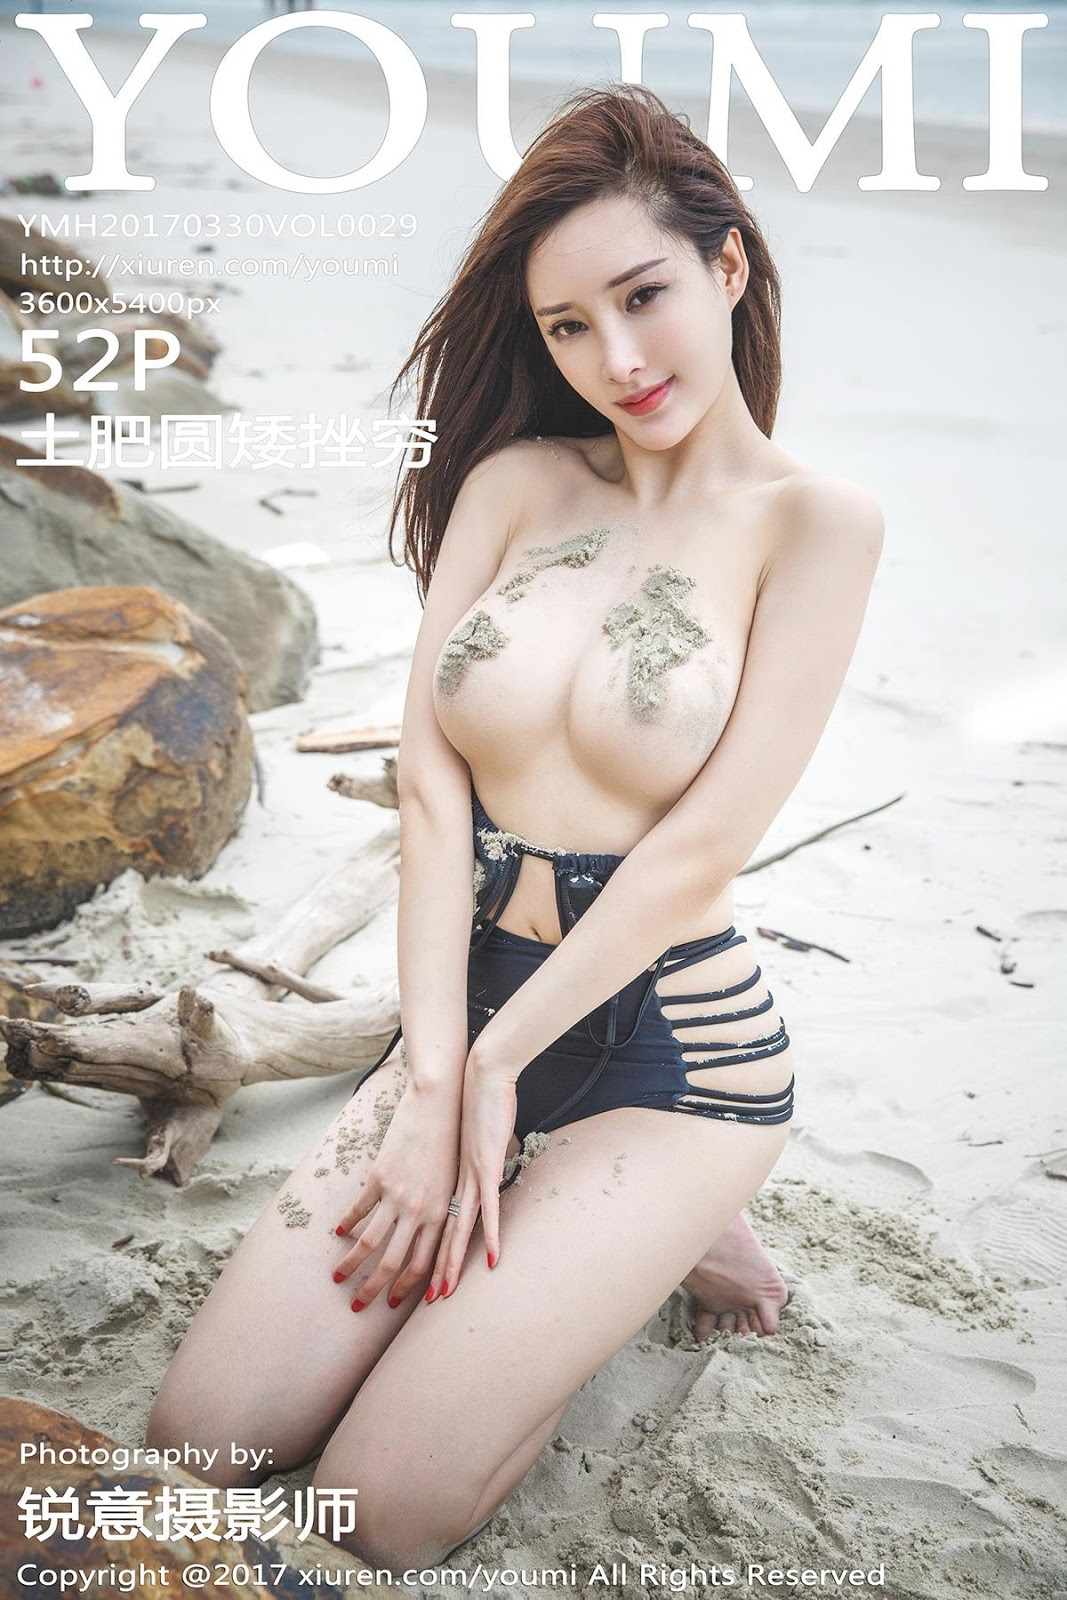 Chinese Model 土肥圆矮挫穷 YOUMI 029 (52 Pict)